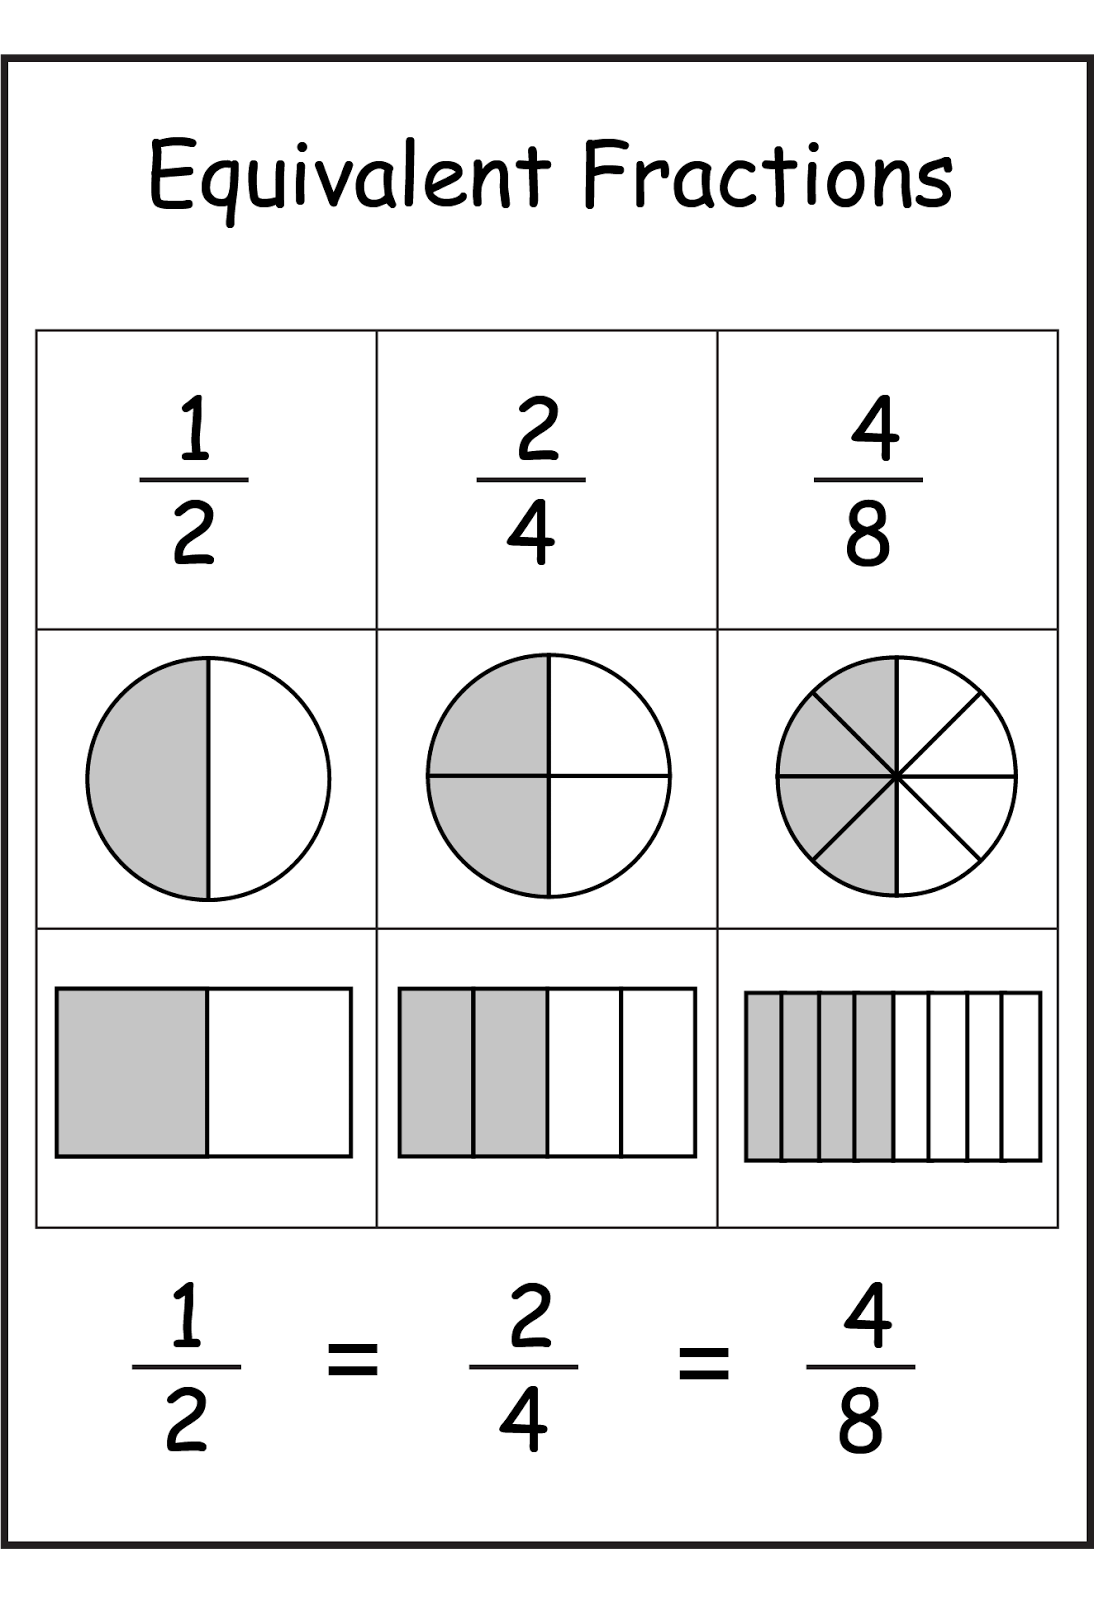 Worksheet On Fractions Year 3